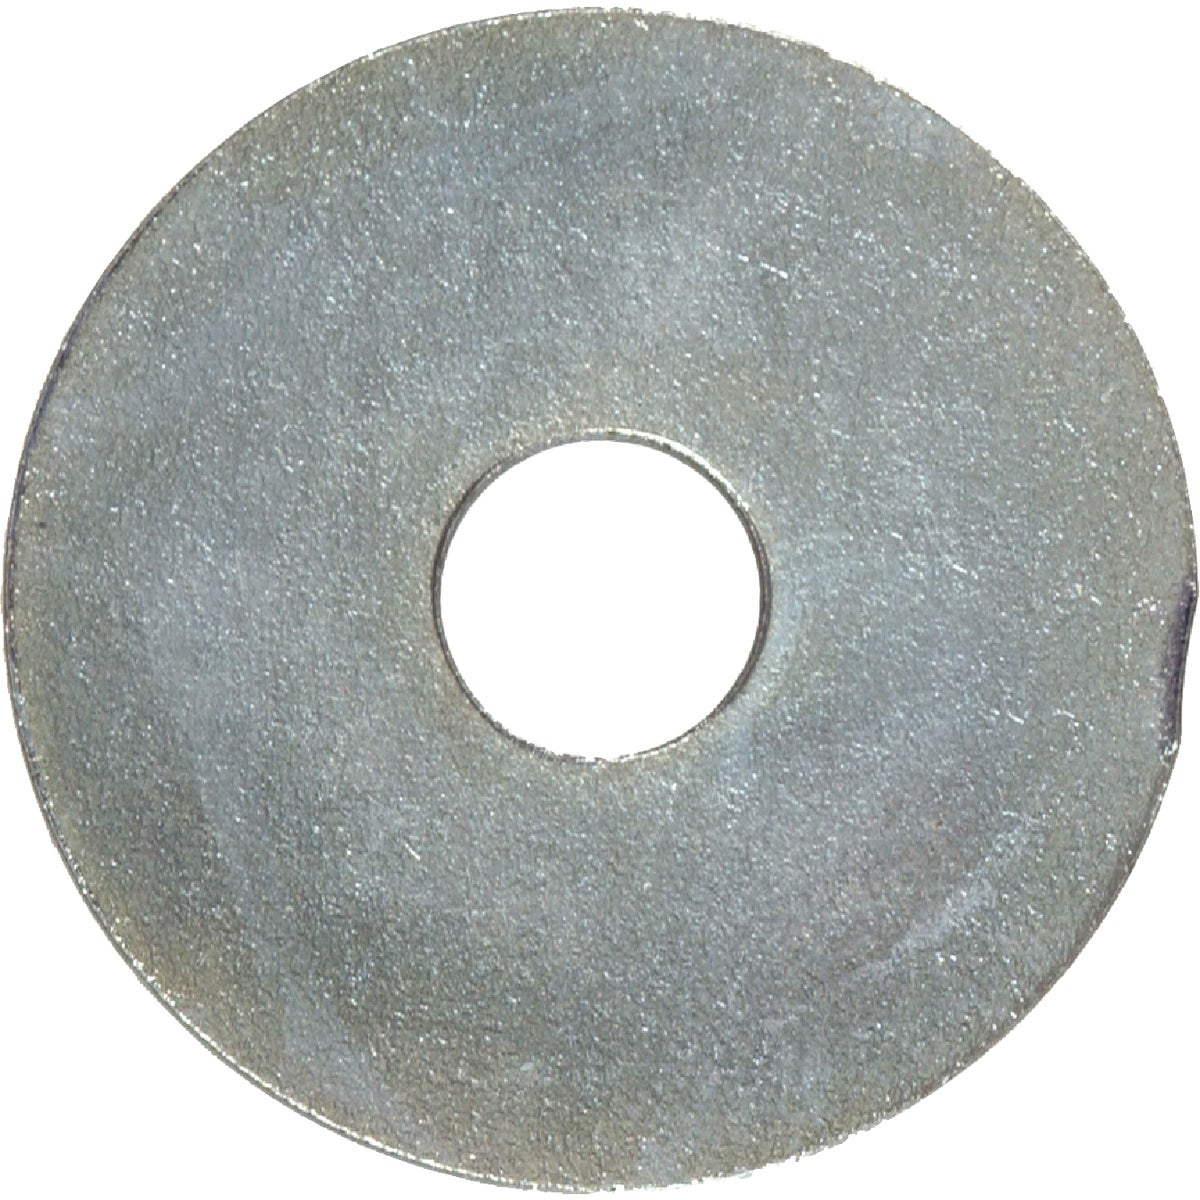 1/8X5/8 FENDER WASHER - 290000 by Hillman Fastener